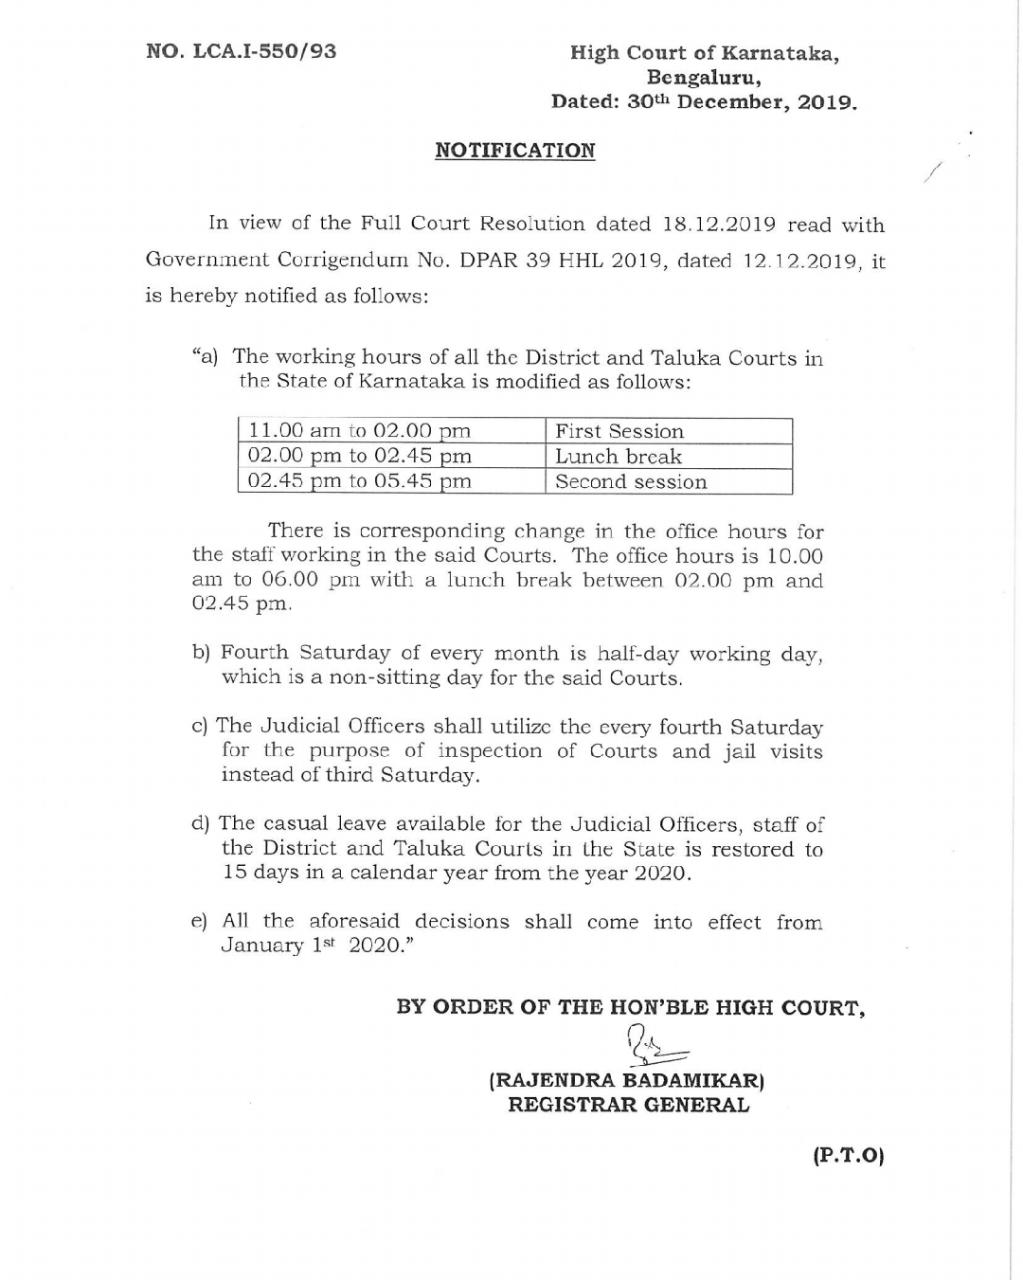 Order on changing the sessions of state courts